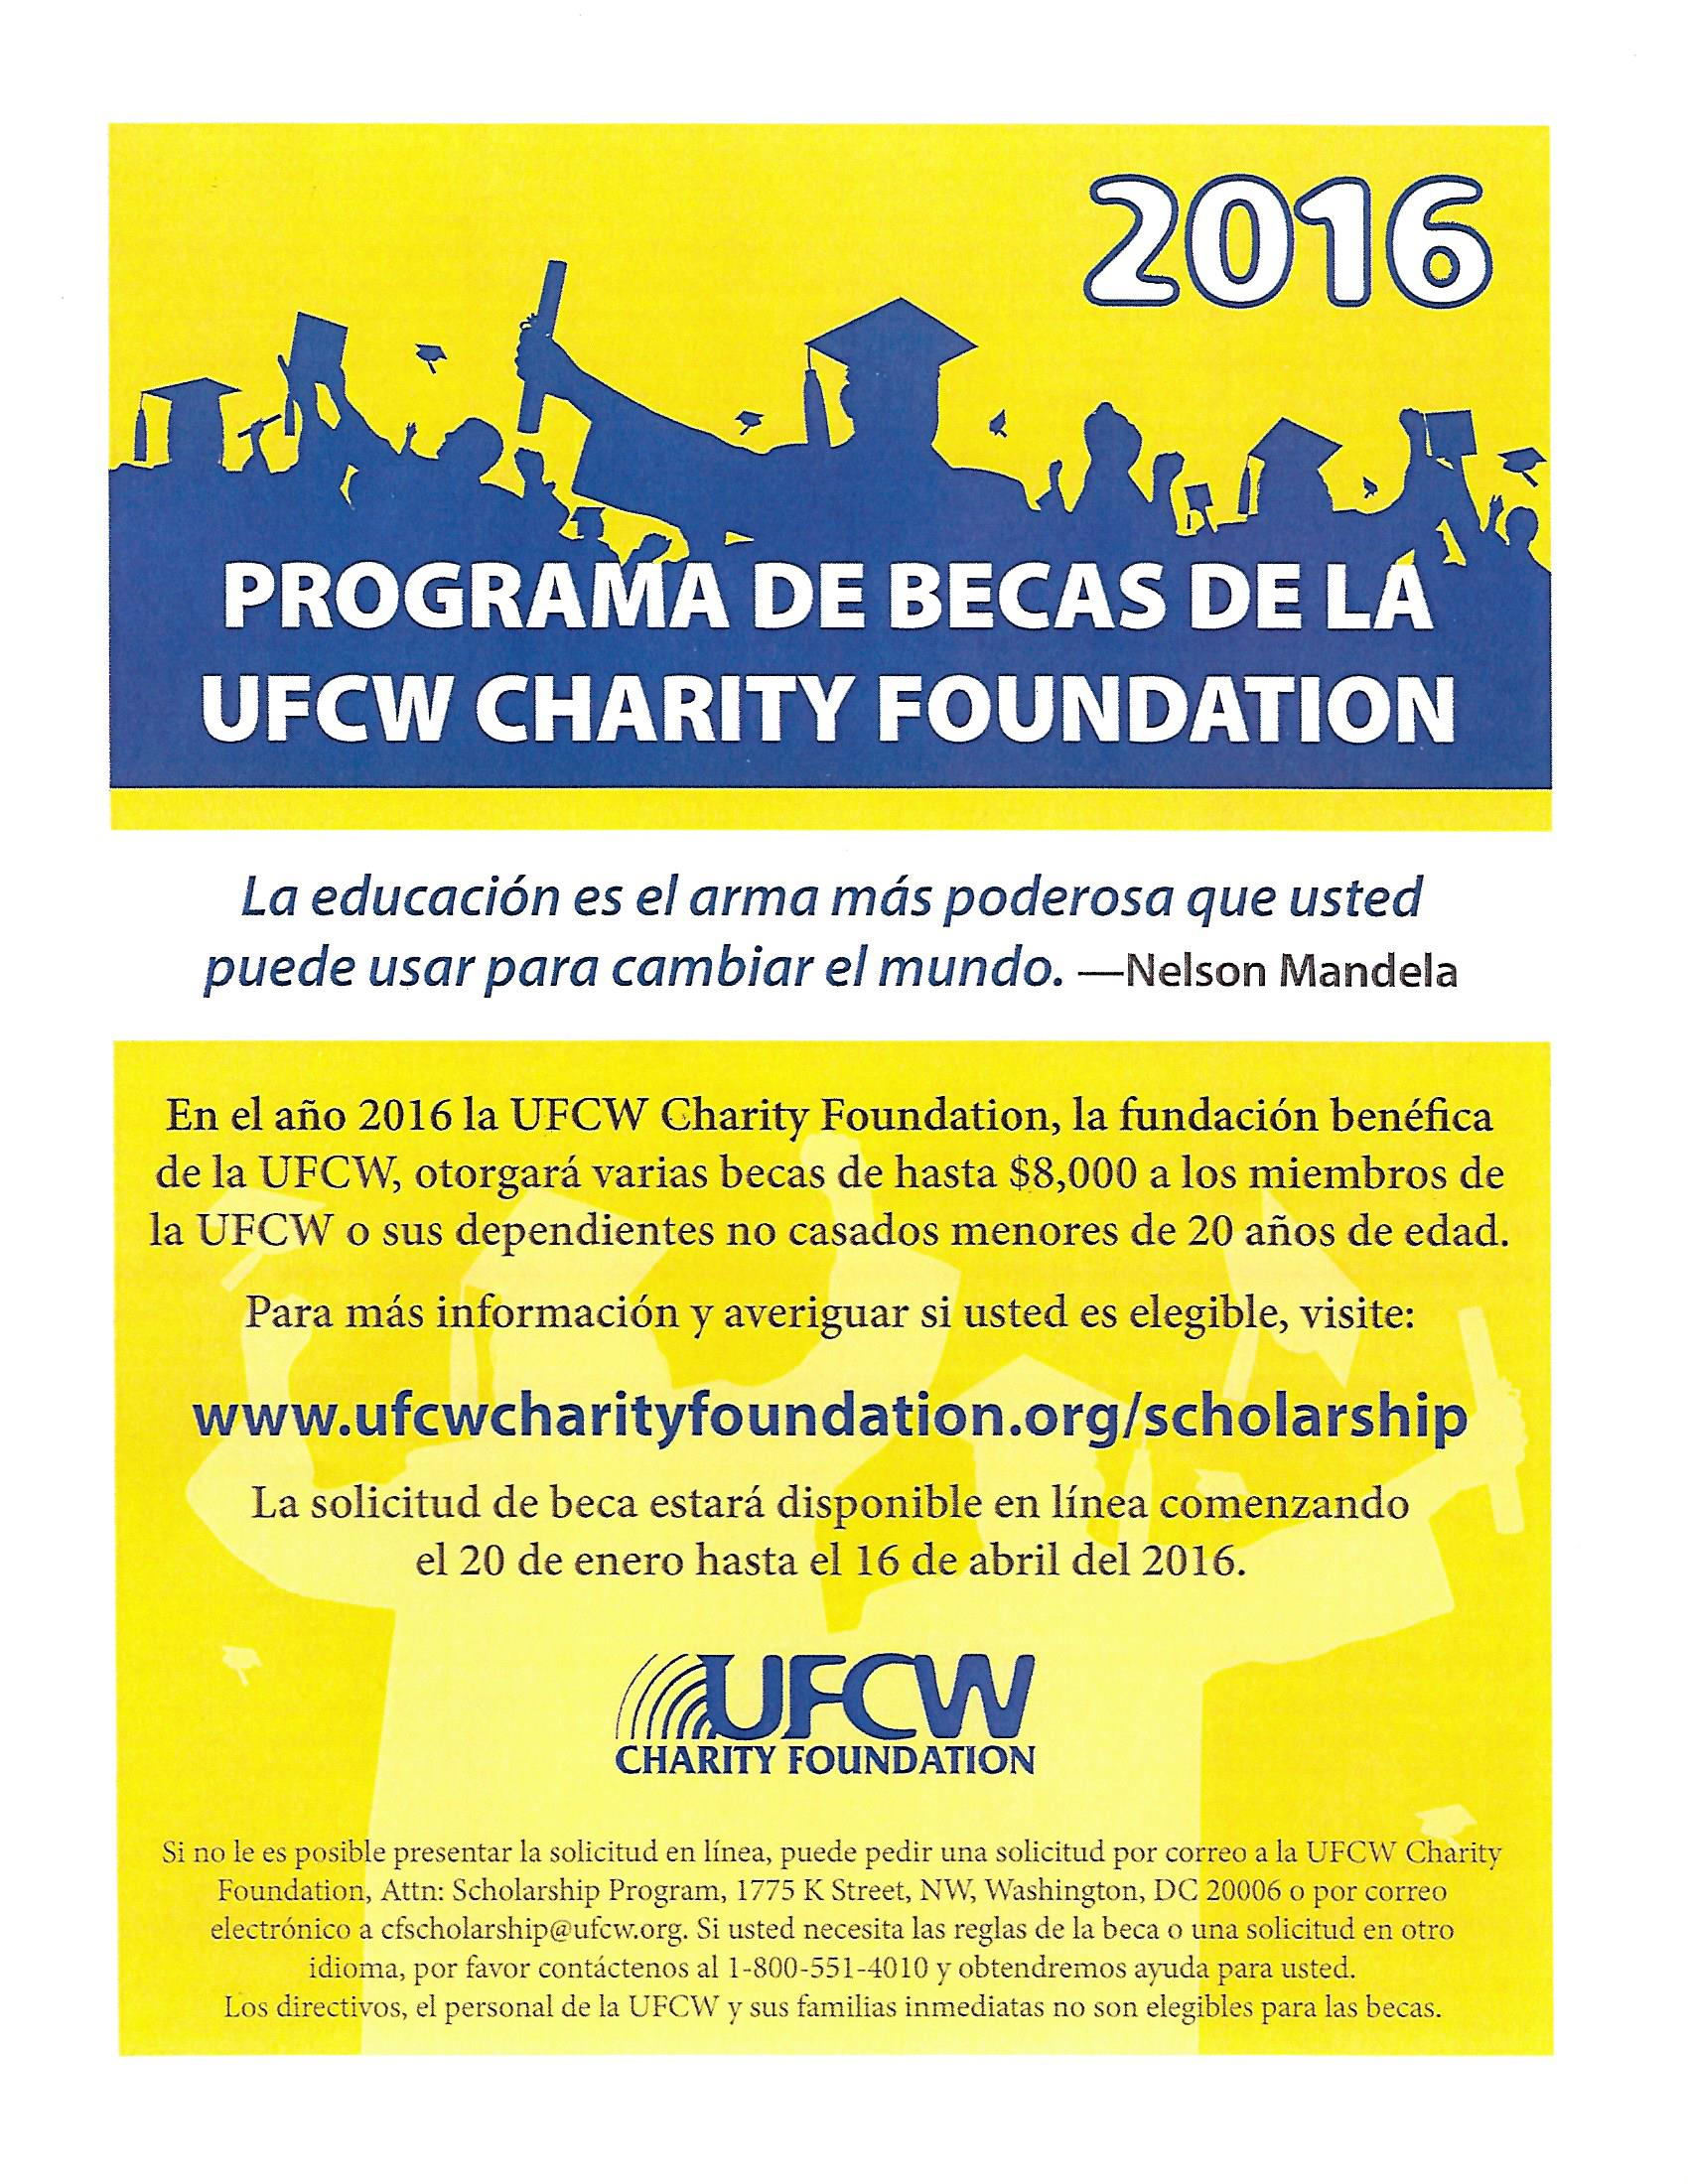 UFCW Charity Foundation Scholarship